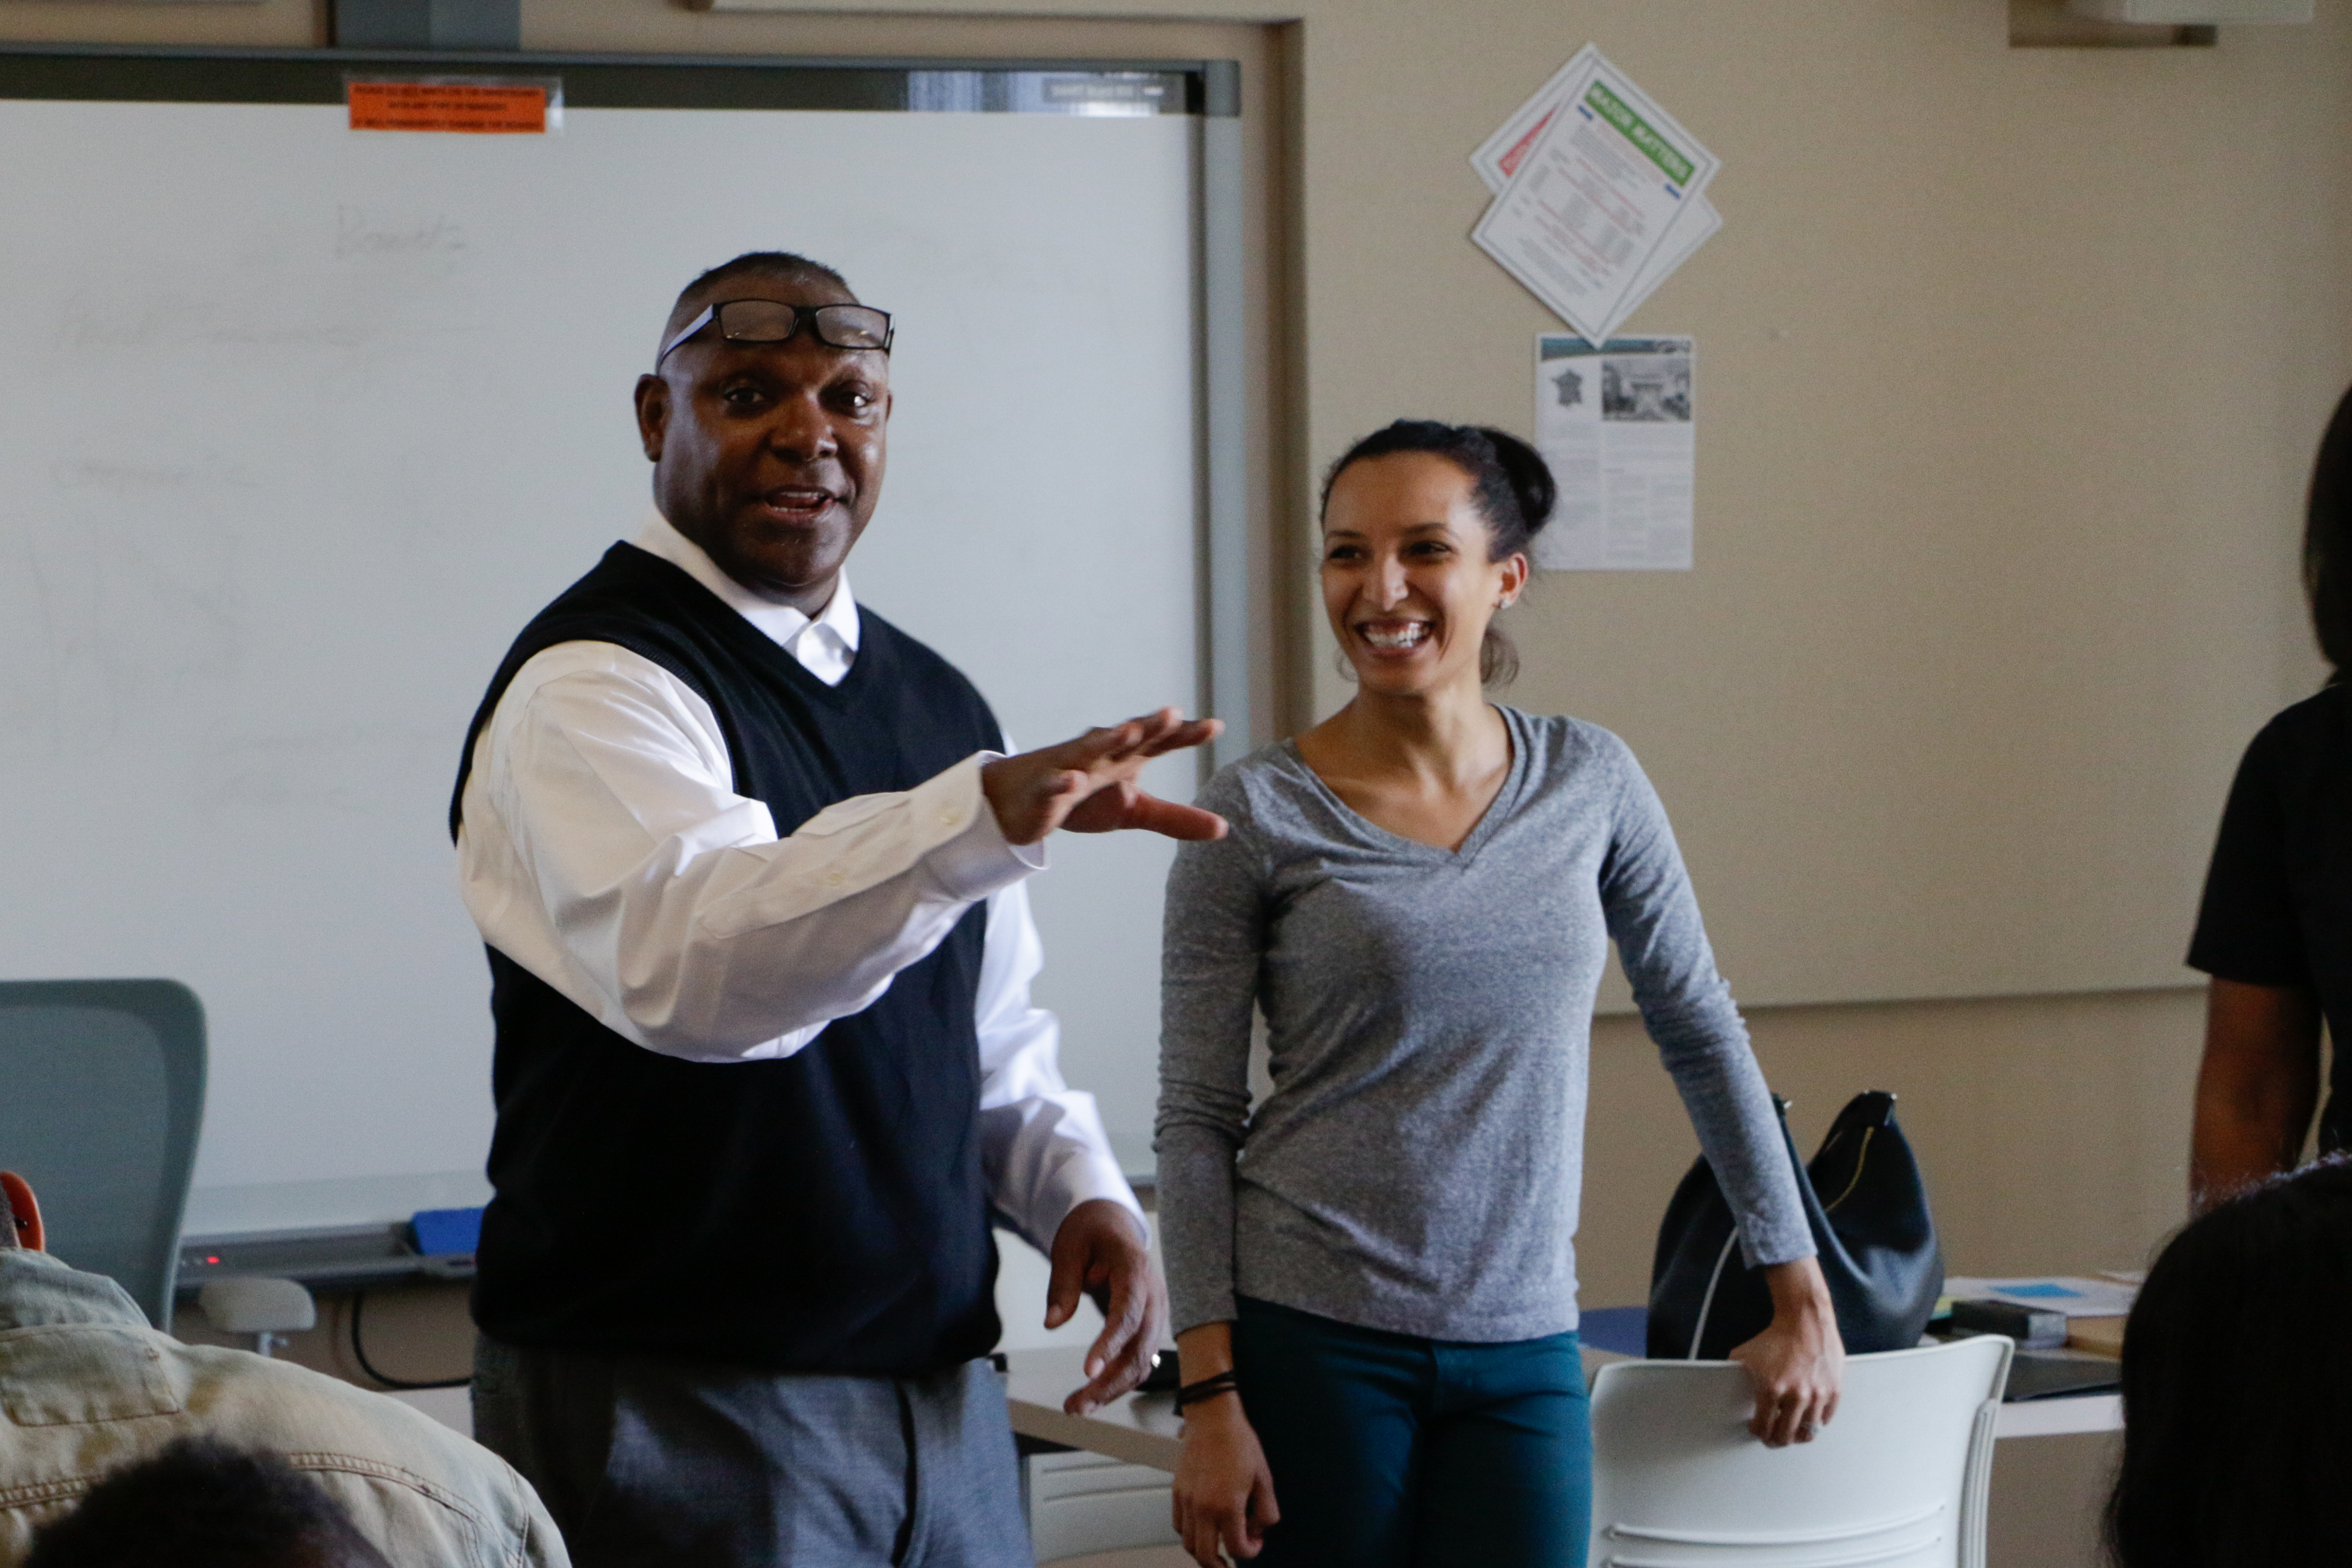 Educational tours provide visits to historically Black universities